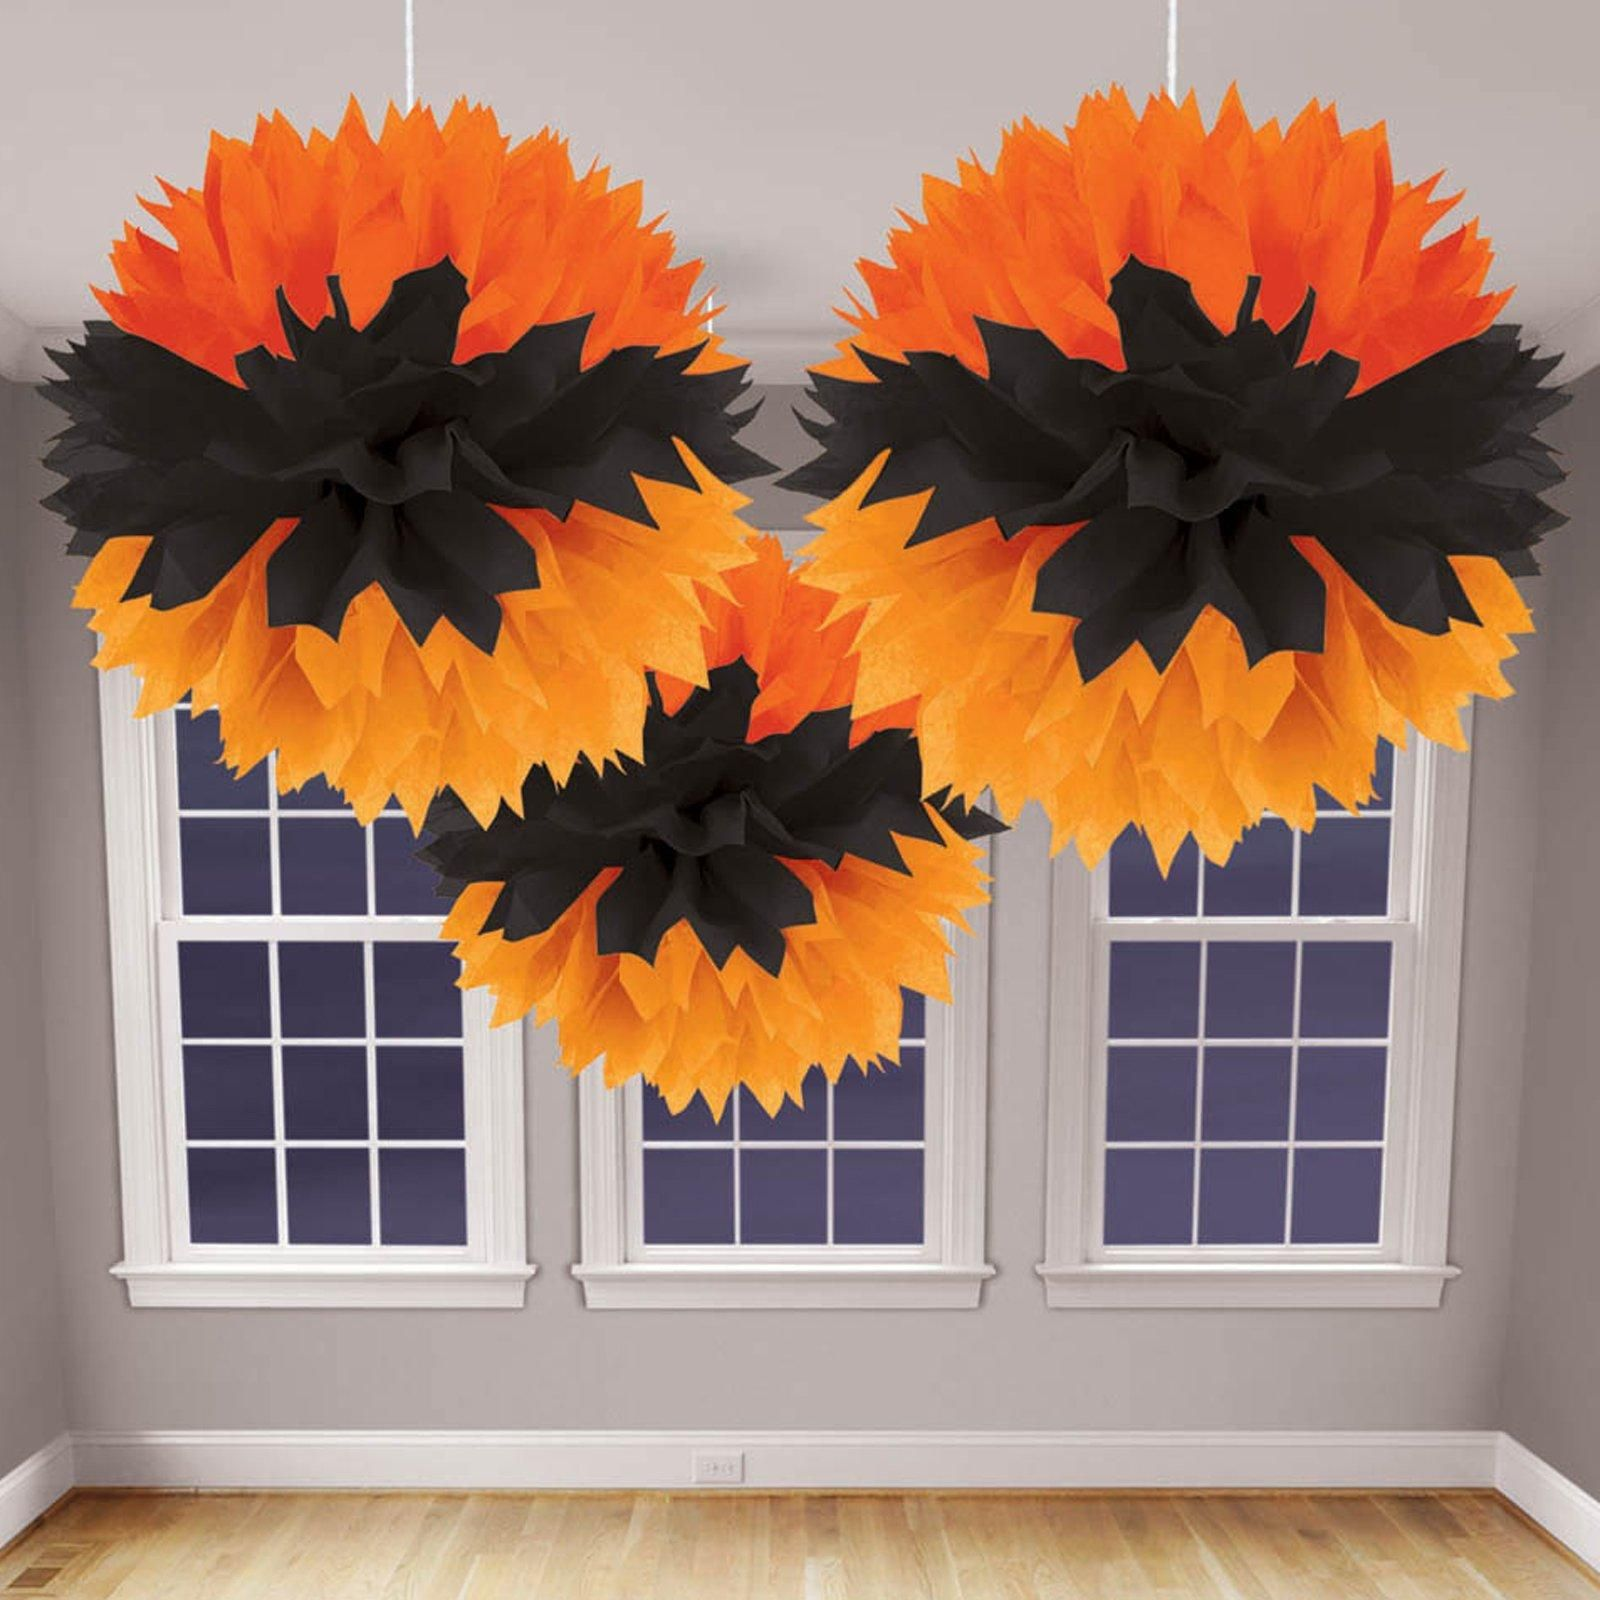 Halloween Orange and Black Fluffy Decorations